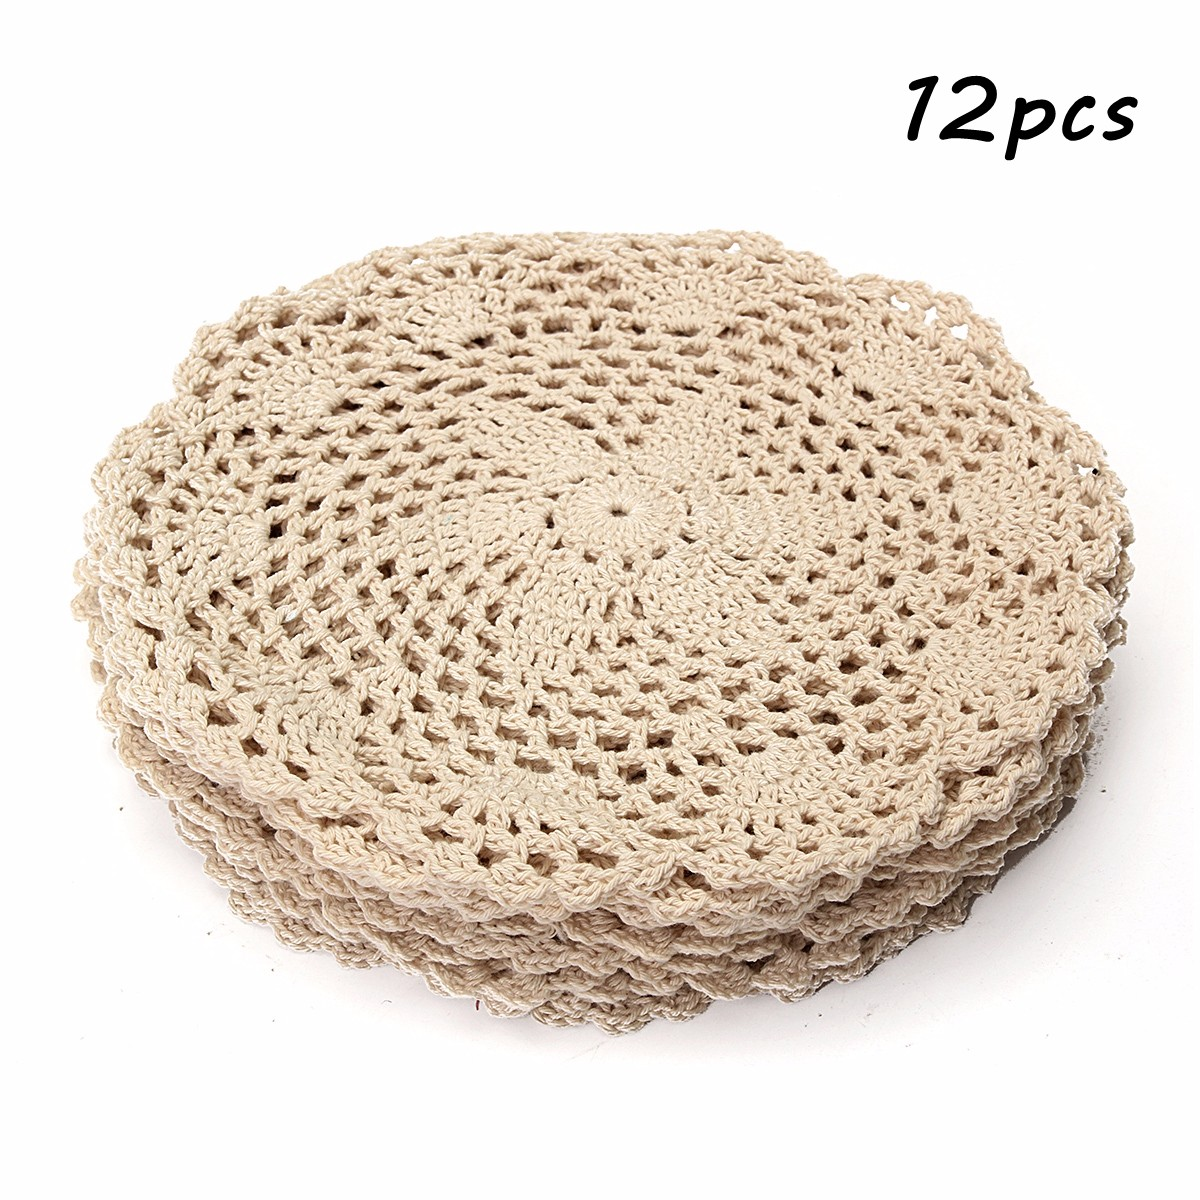 Meigar 12 Pack 8-inch Round Handmade Cotton Crochet Doilies,Ecru Round Crocheted Lace Cloth Fabric Doilies Placemats Table Mat Doily ,Value Pack